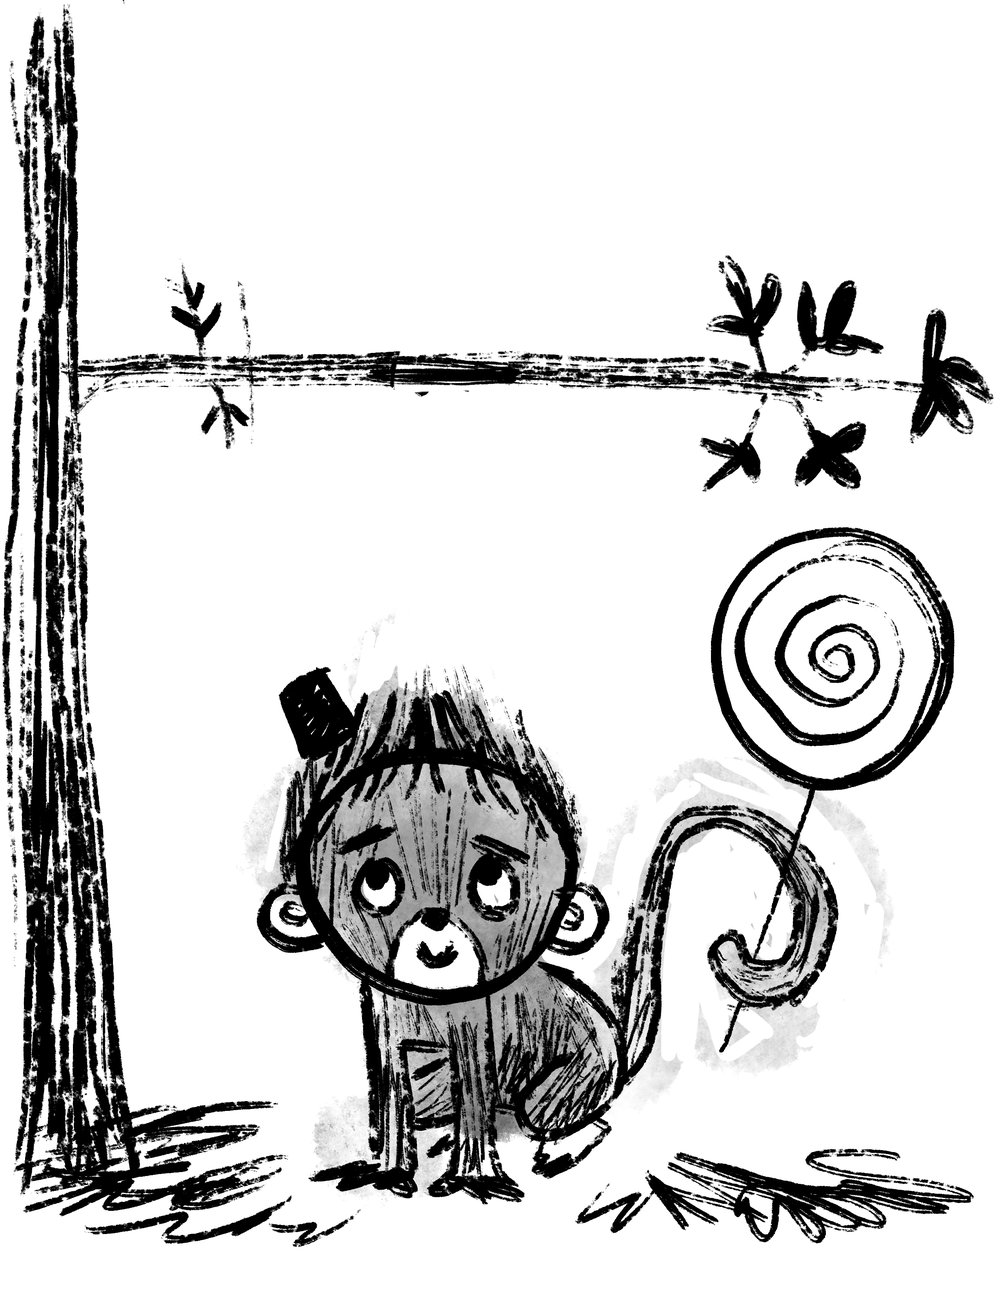 Monkey development sketch